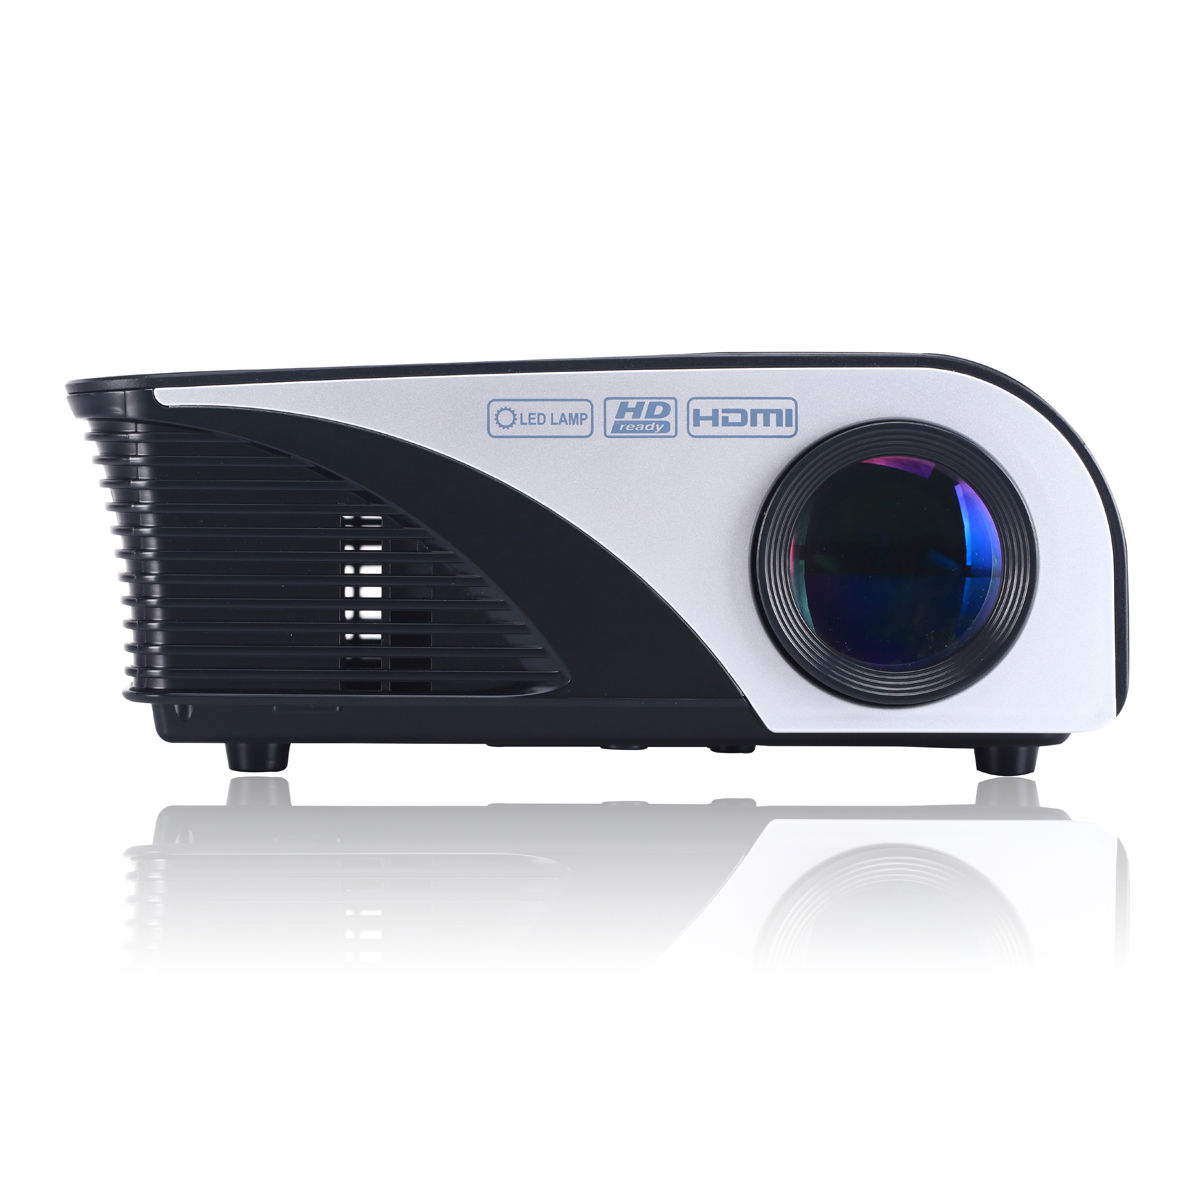 Rd 805b led mini projector home theater projectors 1200 for Small hdmi projector